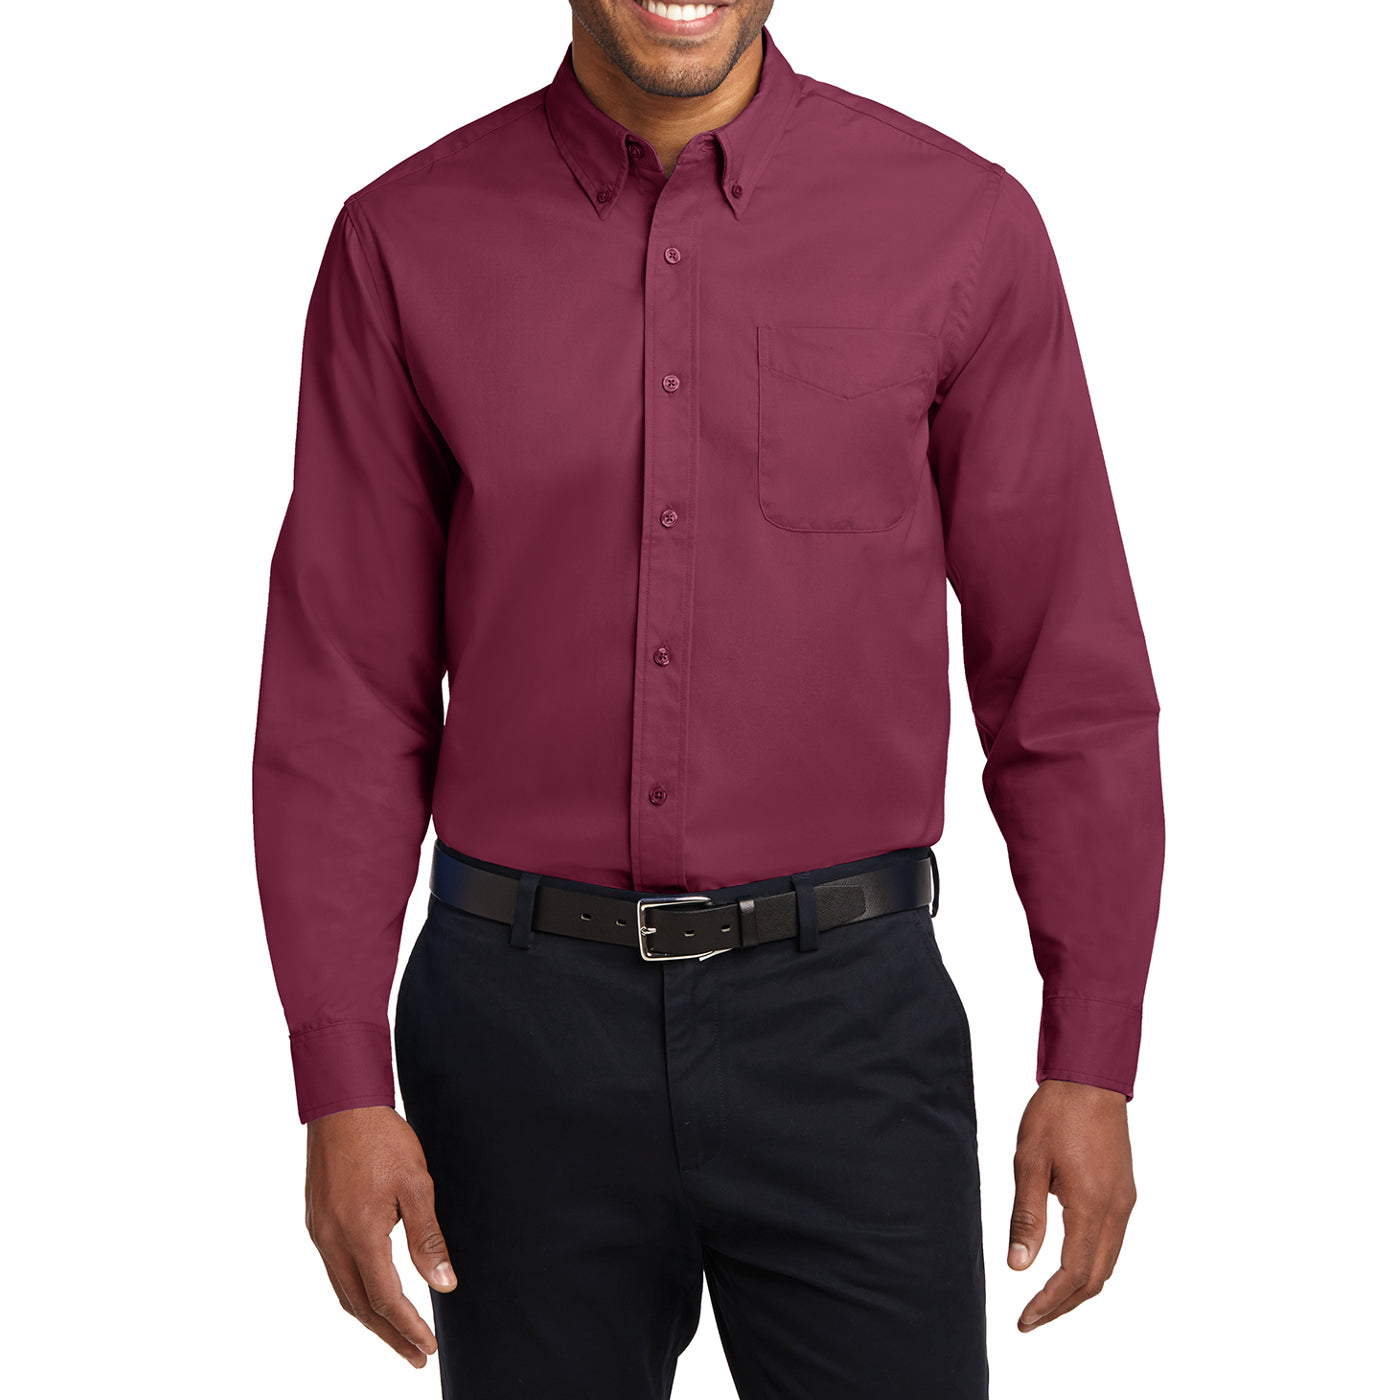 Men's Long Sleeve Easy Care Shirt - Burgundy/ Light Stone - Front